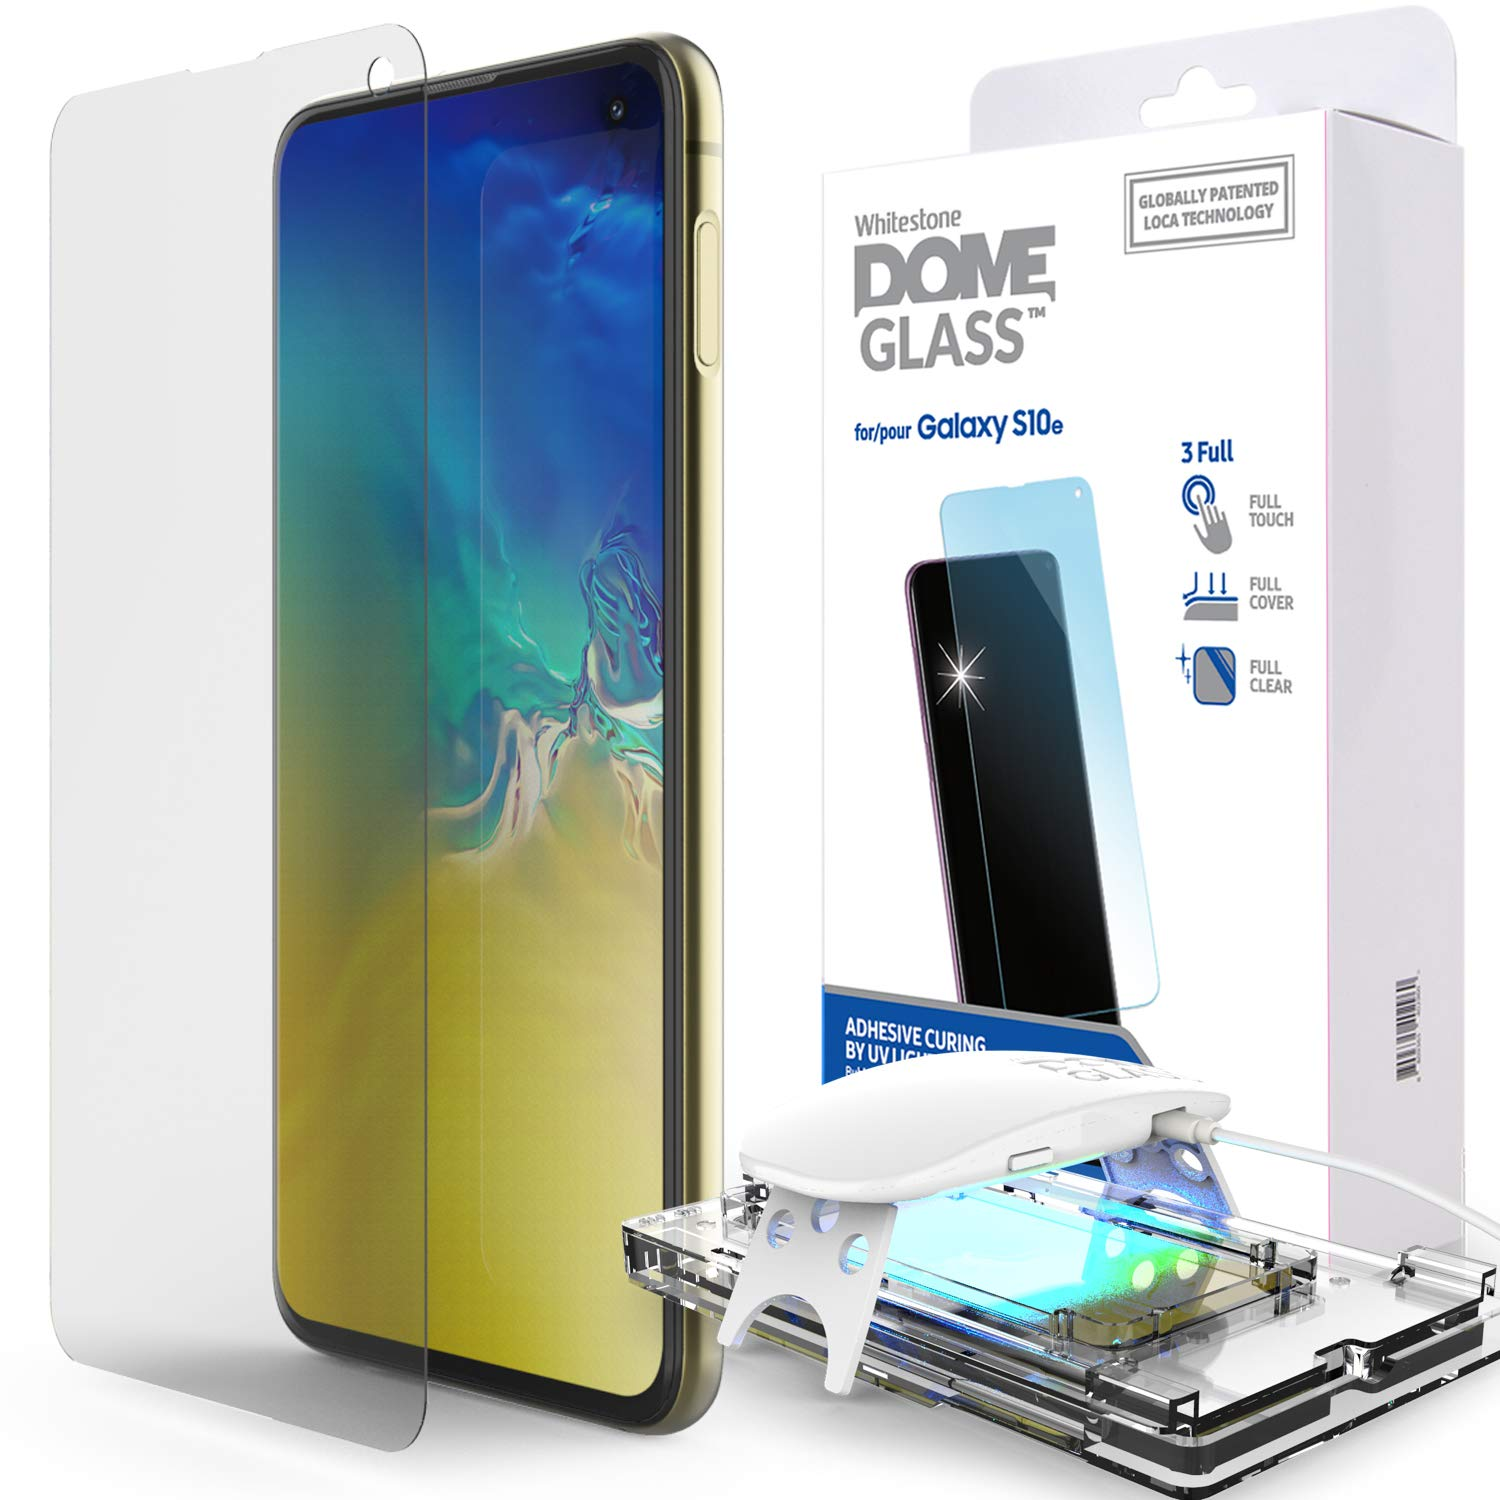 Galaxy S10e Screen Protector, [Dome Glass] Full Cover Tempered Glass [LOCA Tech] Easy Install Kit by Whitestone for Samsung Galaxy S10e (2019) - 1 Pack by Dome Glass